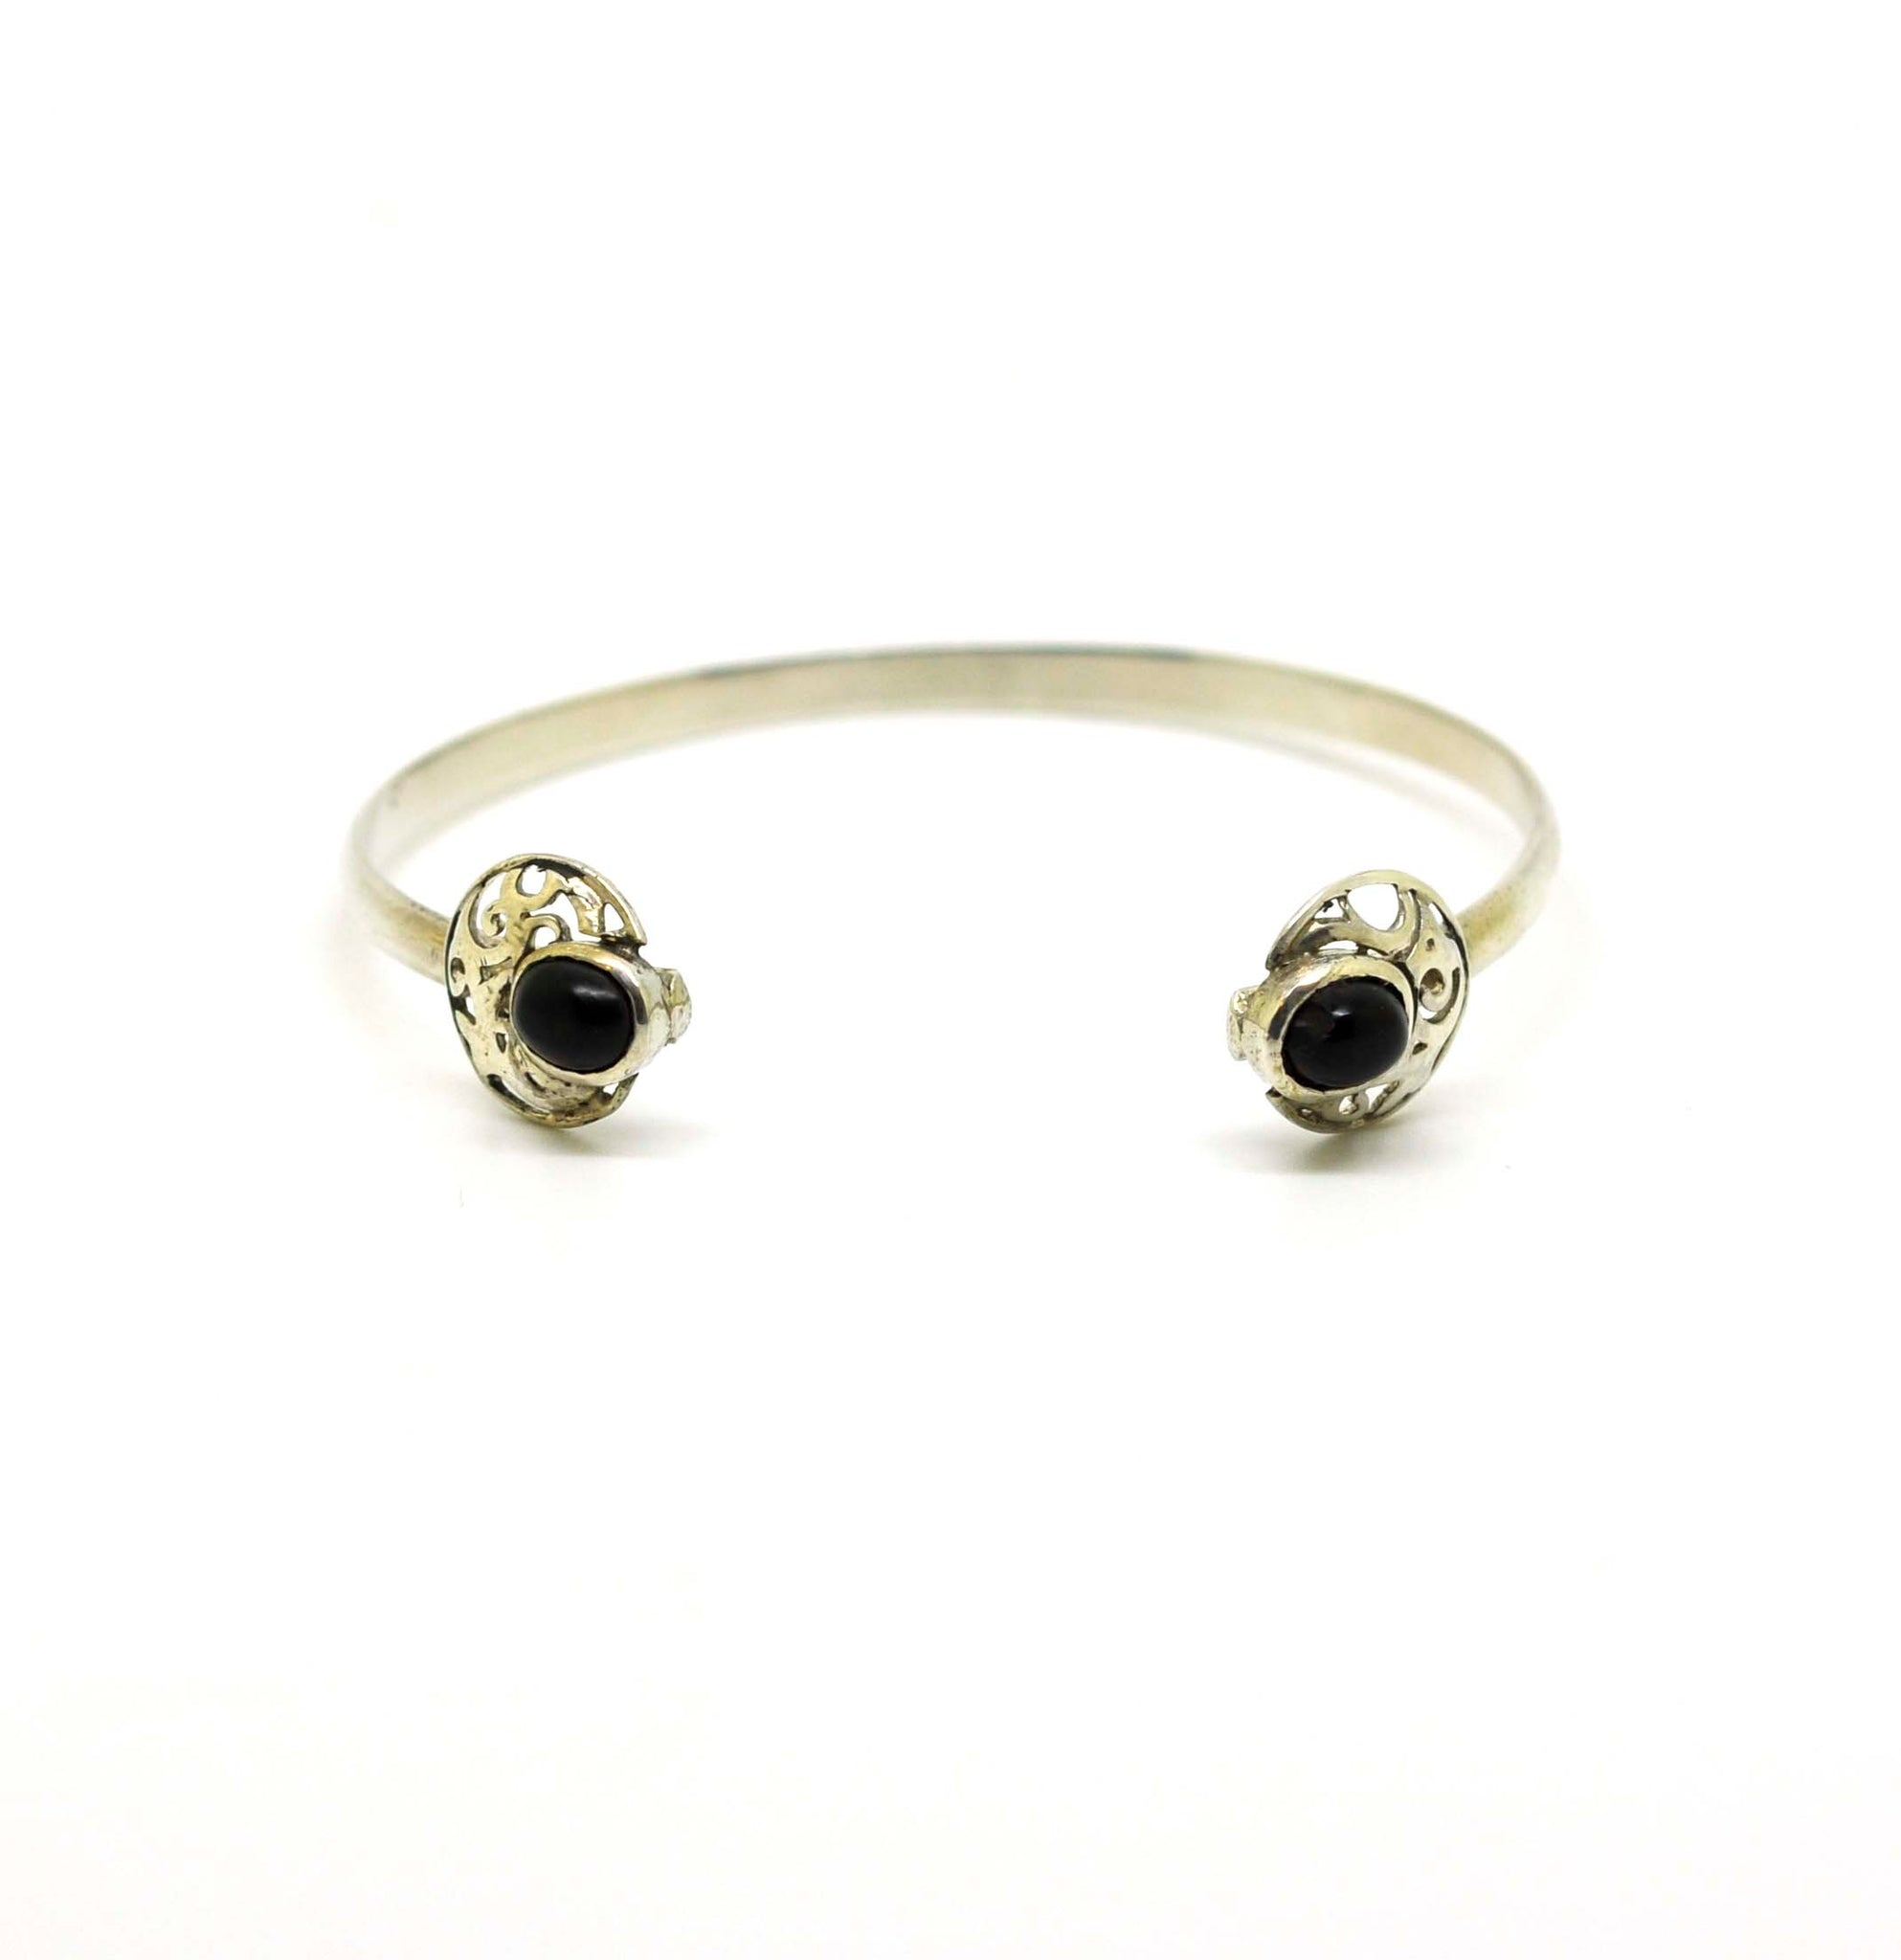 SOLD - NEW Thin cuff with black onyx